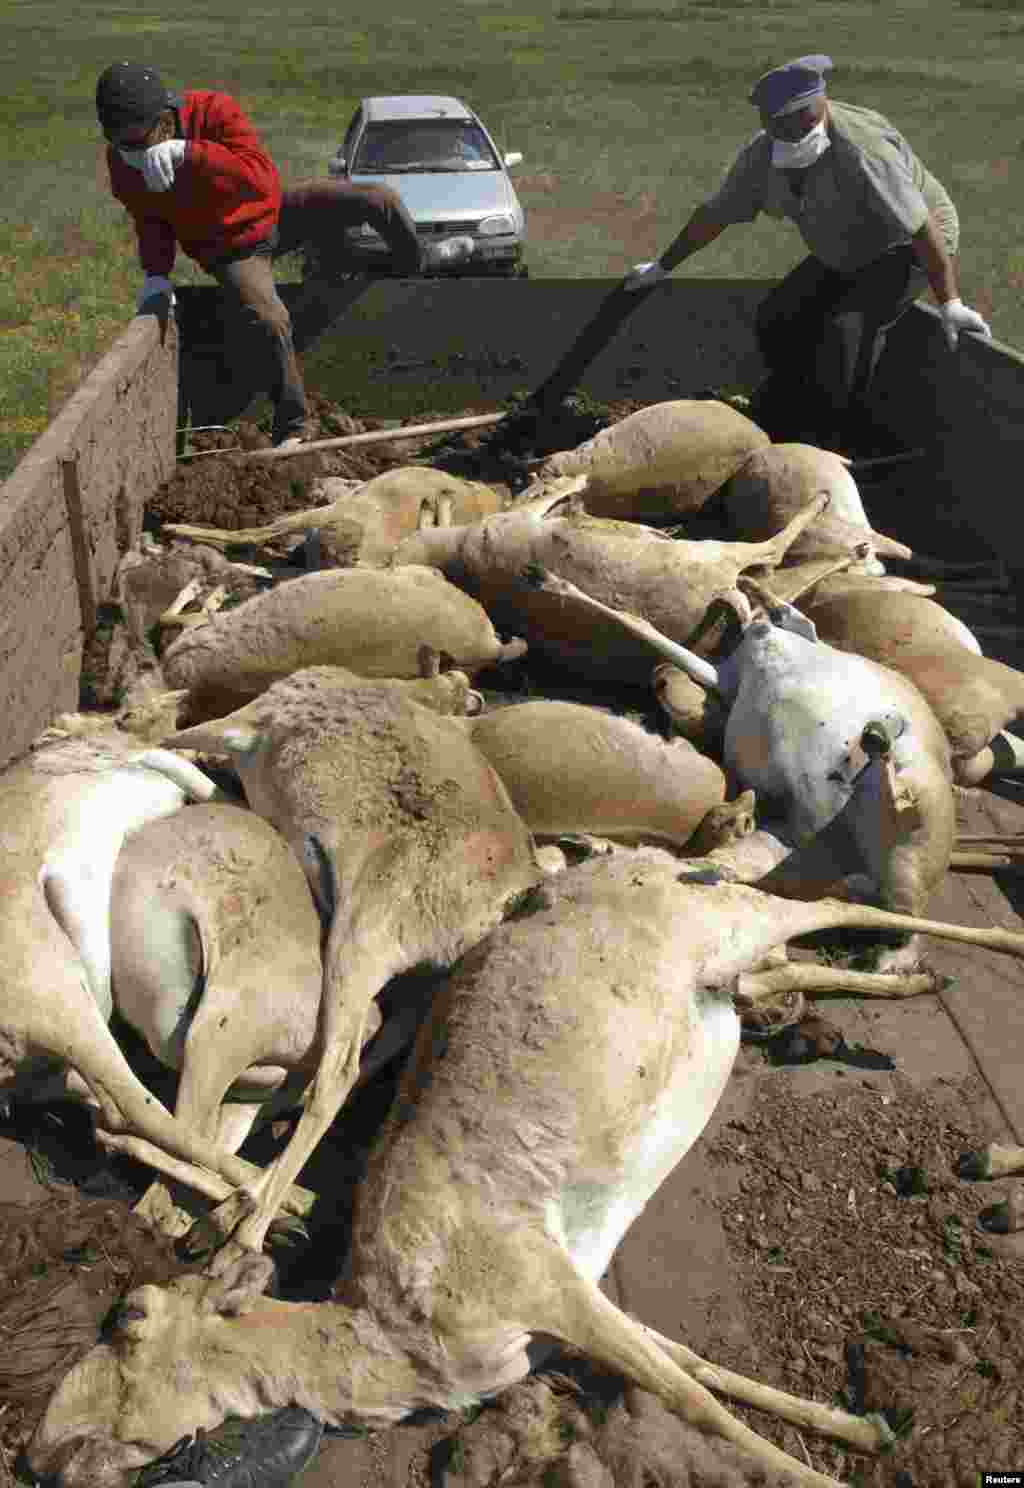 Men load a trailer with carcasses of dead saiga antelope in western Kazakhstan in 2010.